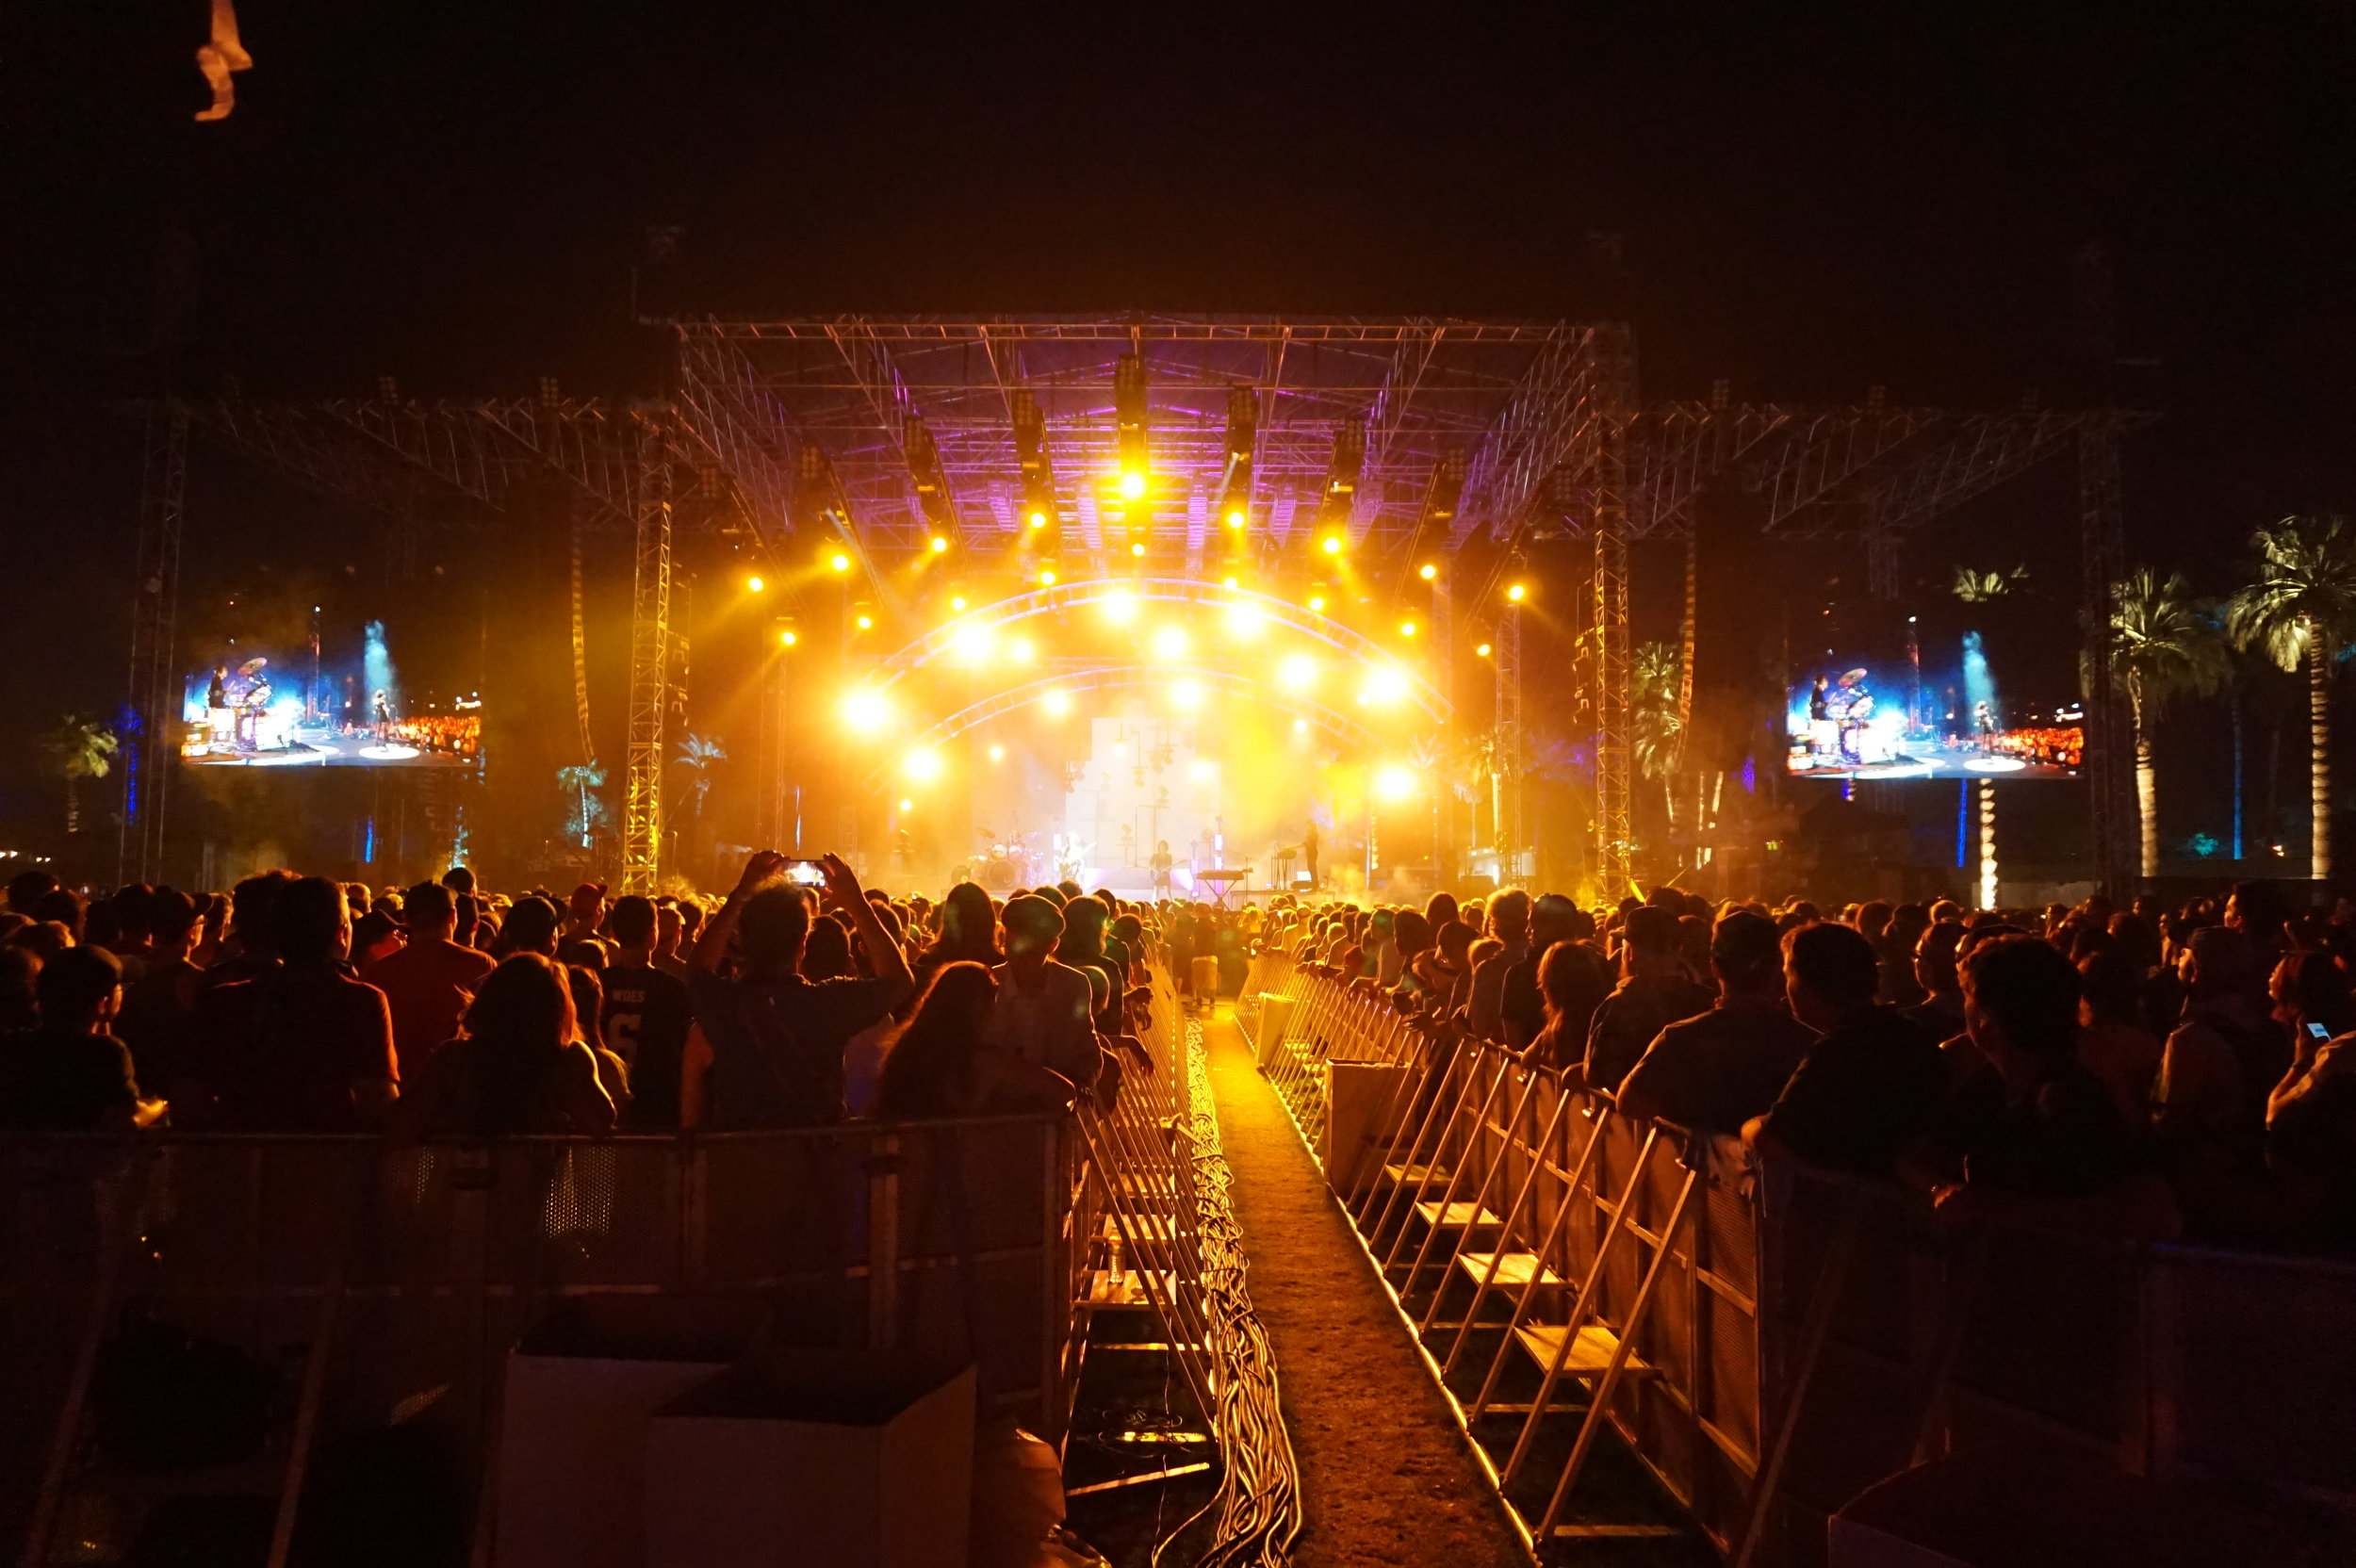 Live sound tips for touring outdoors